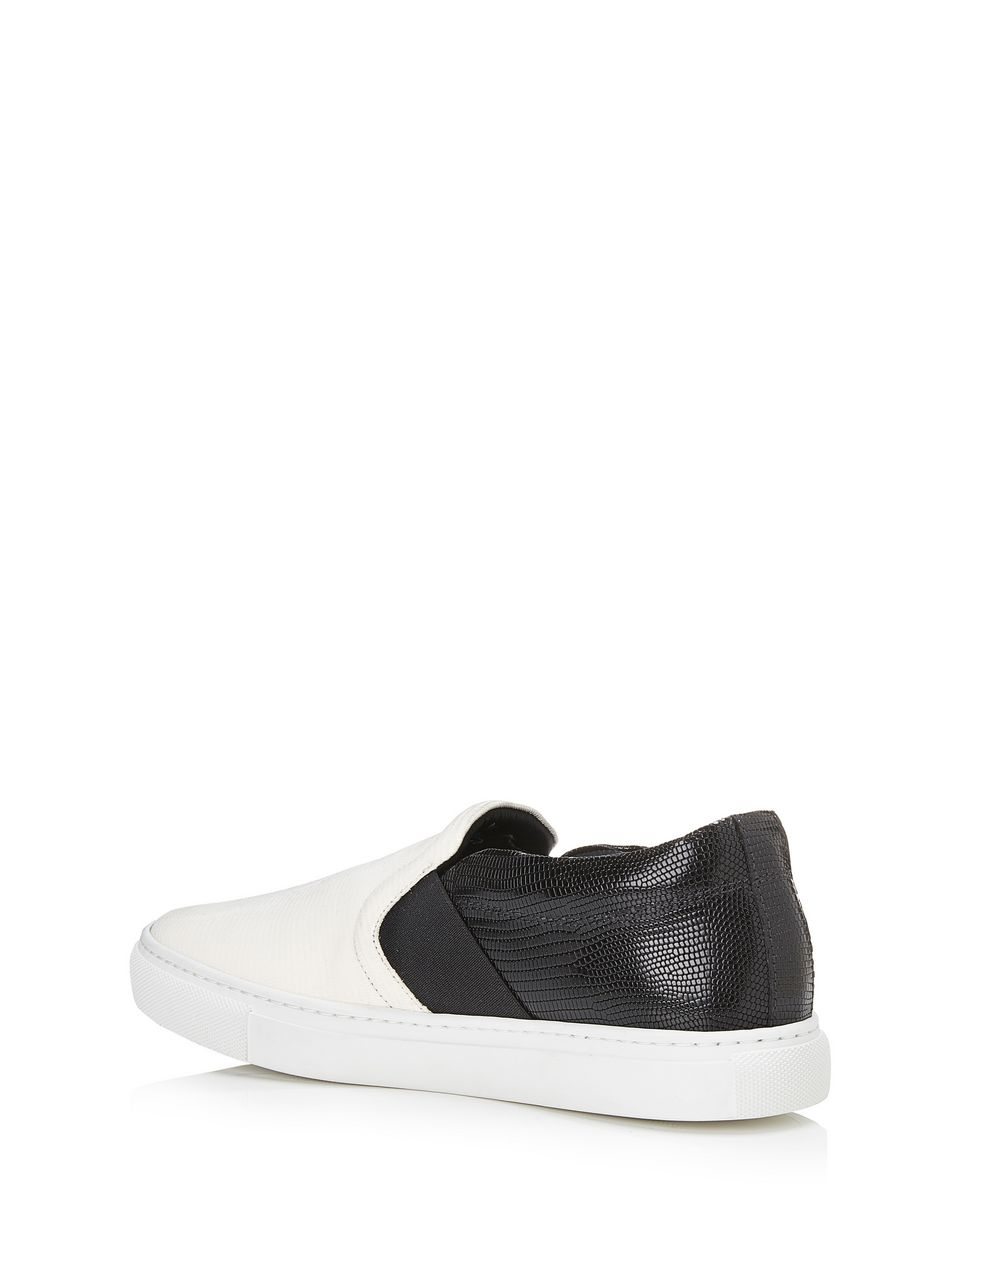 TWO-TONED SLIP-ON SNEAKER - Lanvin